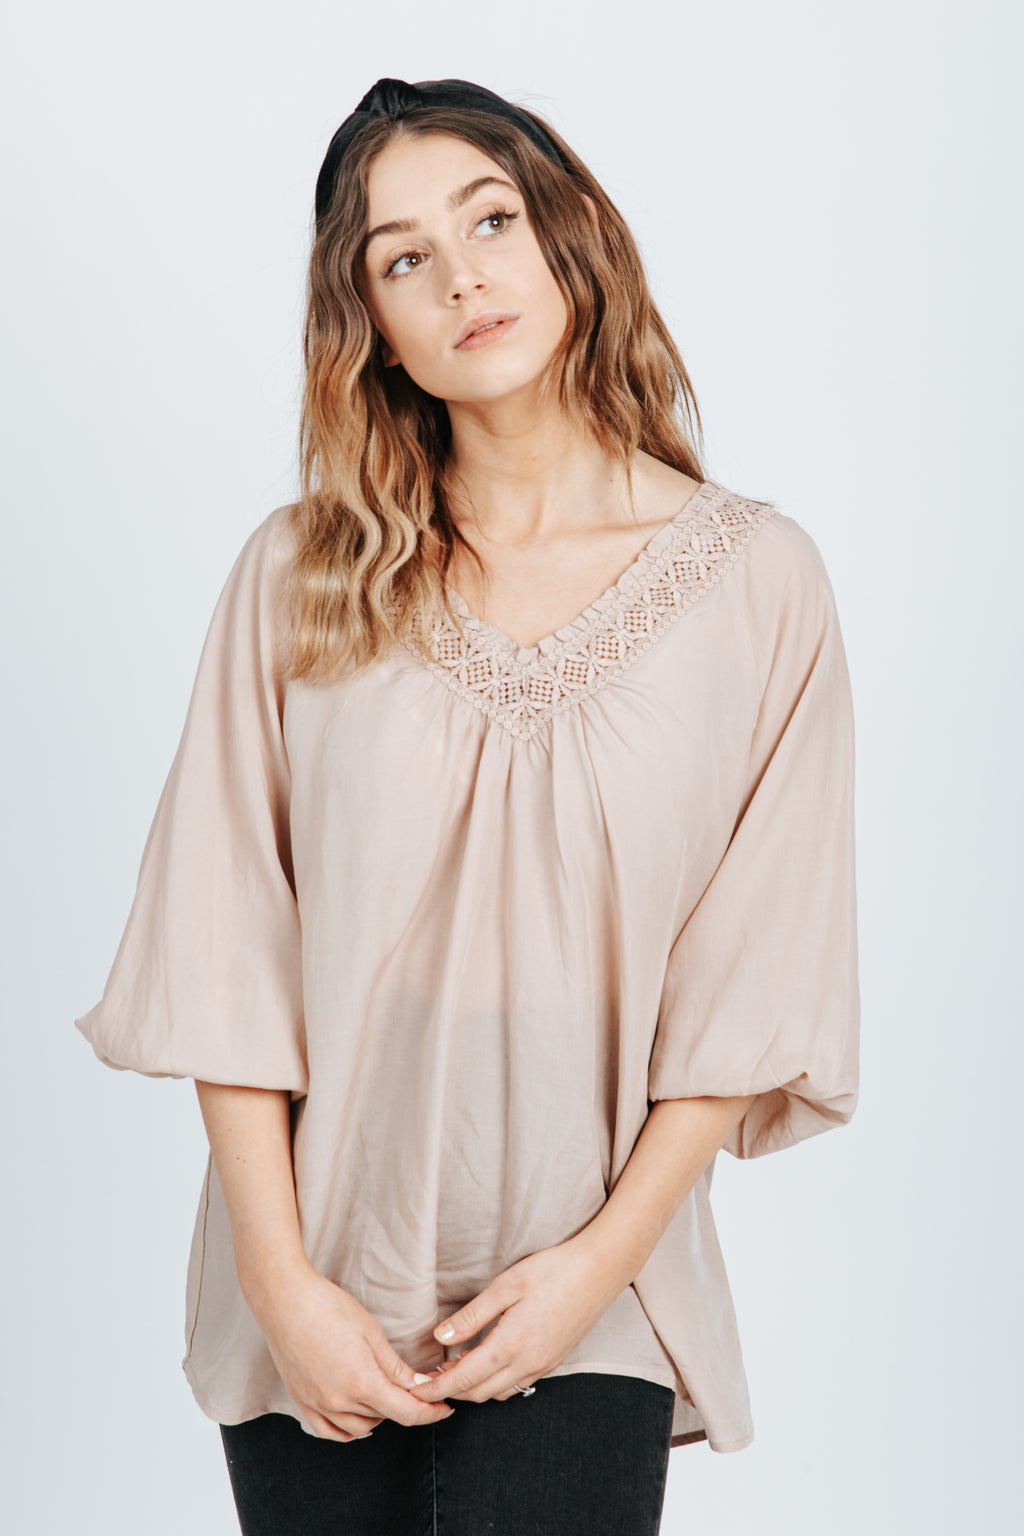 The Brody Lace Detail Blouse in Blush